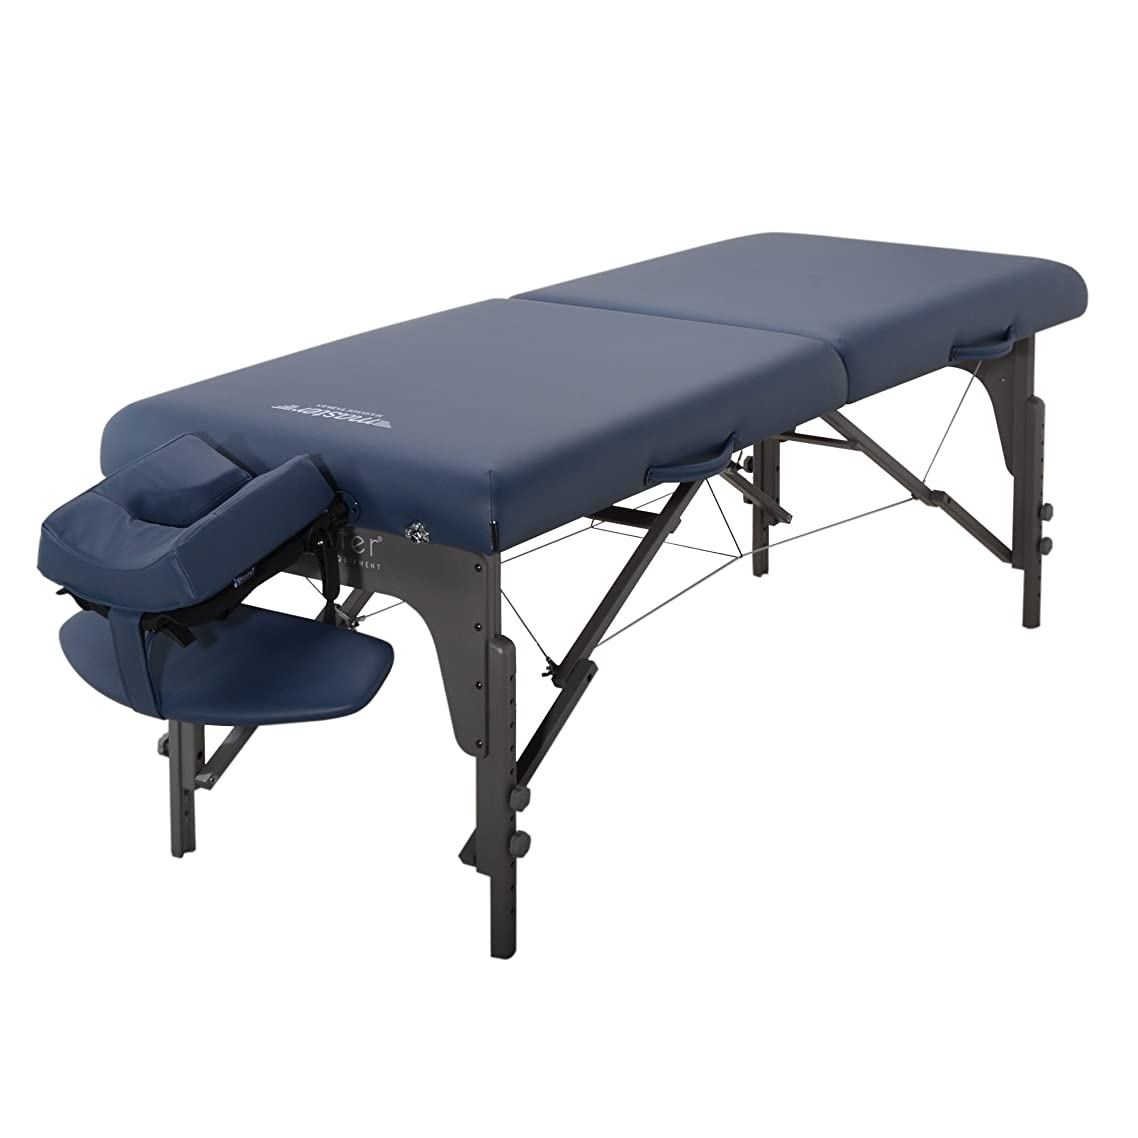 Master Massage 31 inch Montclair LX Pro Portable Massage Table Package with Memory Foam, Royal Blue